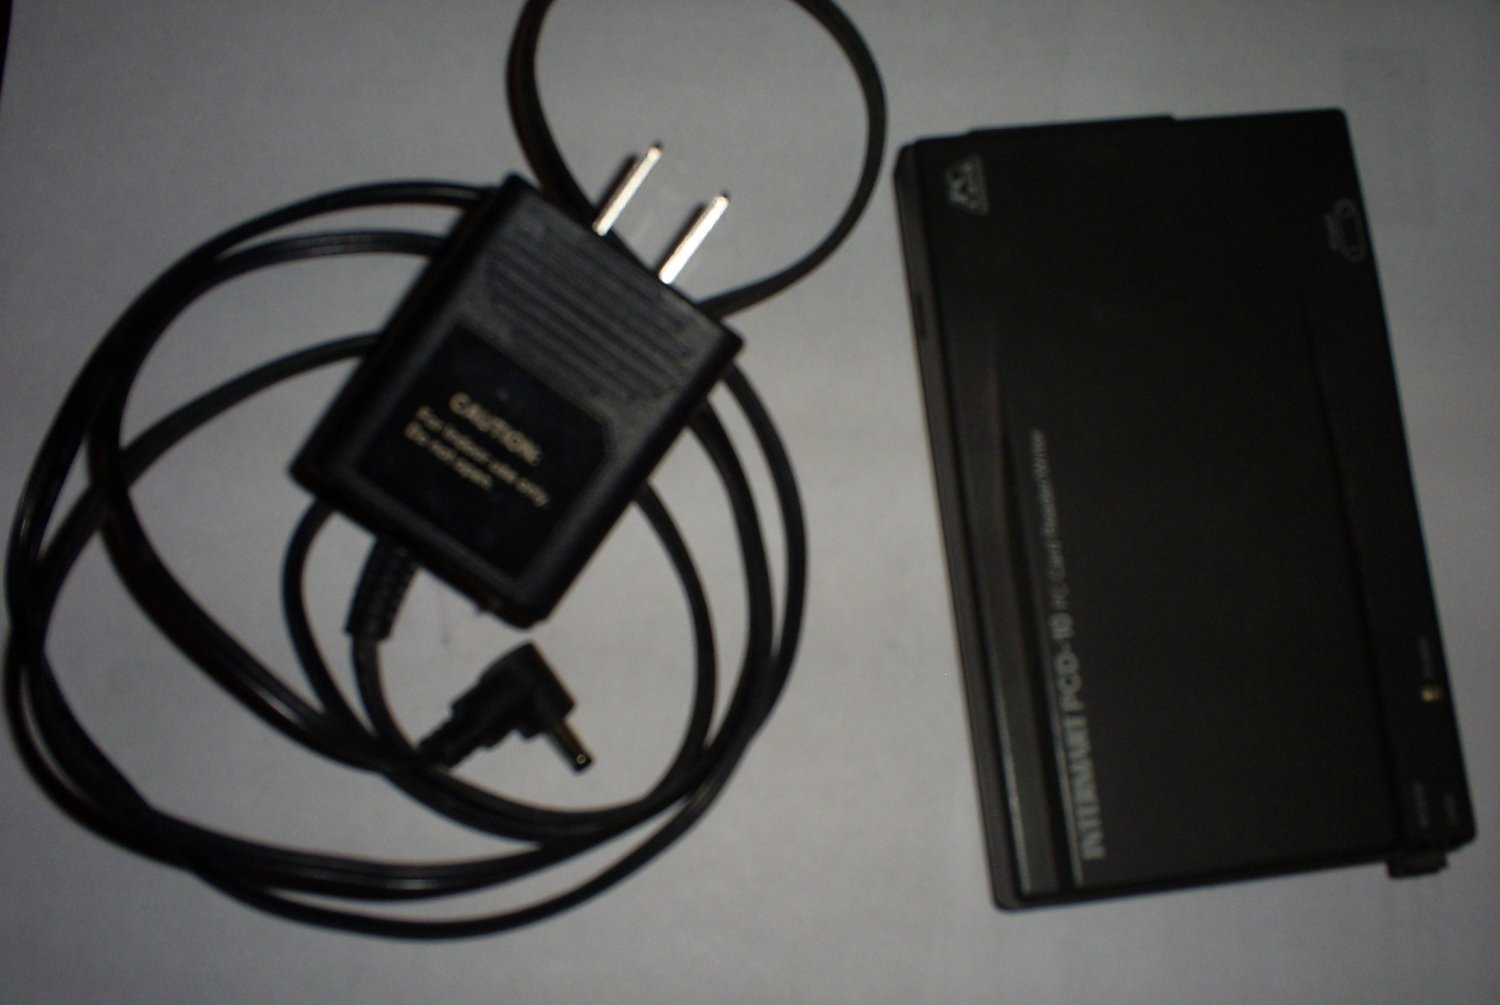 Intermart PCD-10 PC card reader / writer - SCSI with cable & power supply